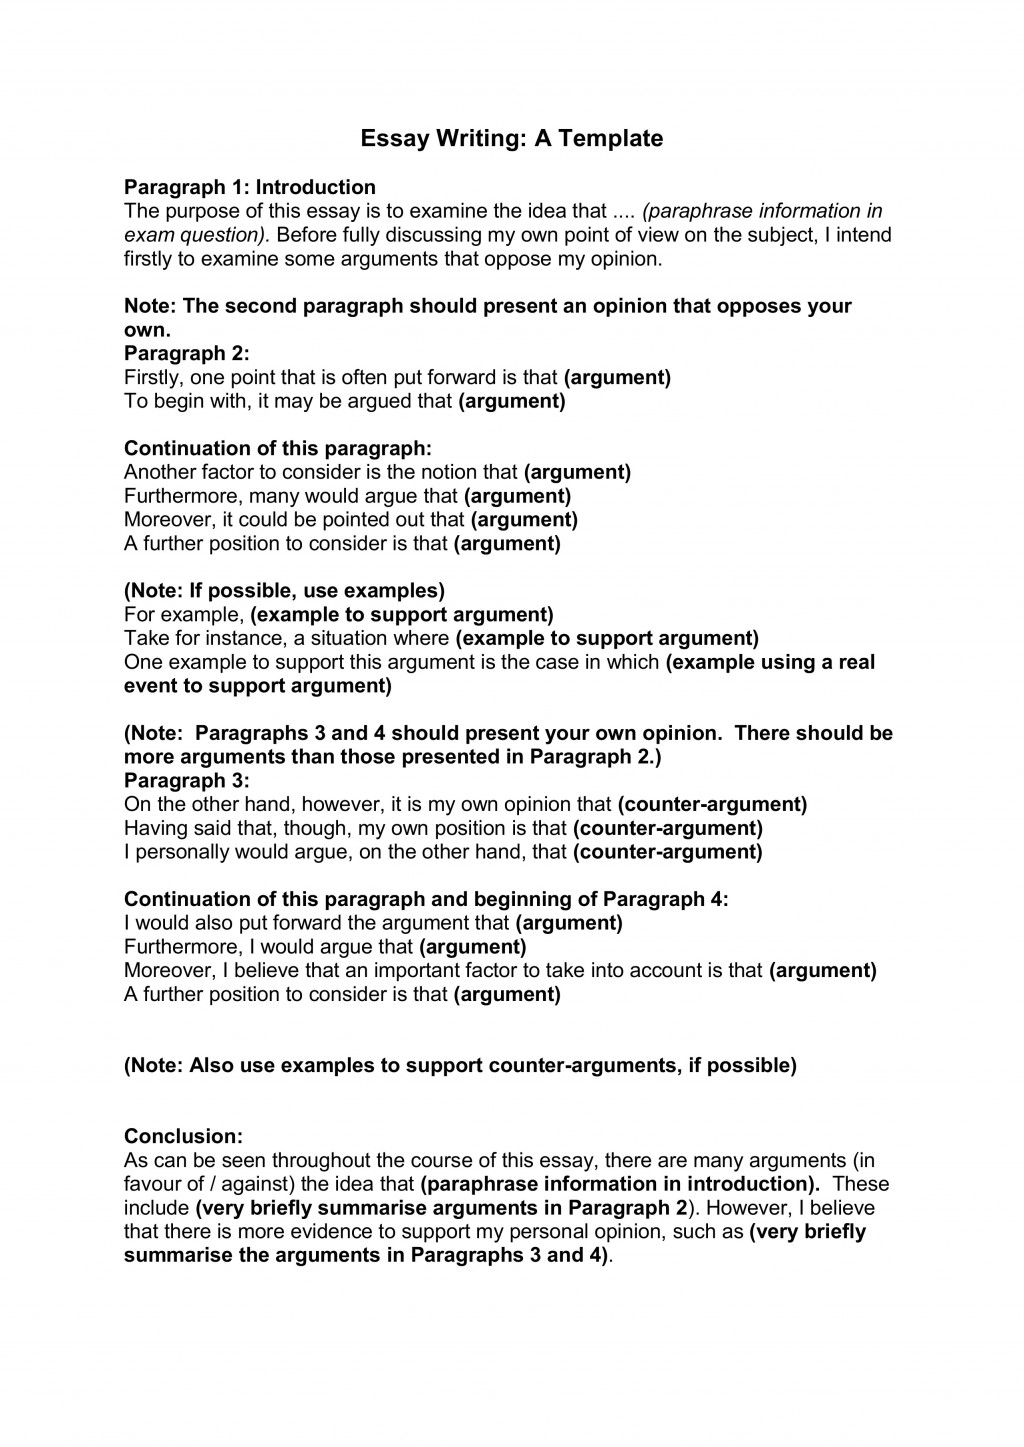 021 Order Of Research Paper Essay Writing Template For Part Breathtaking Chronological Sections In Headings A Large